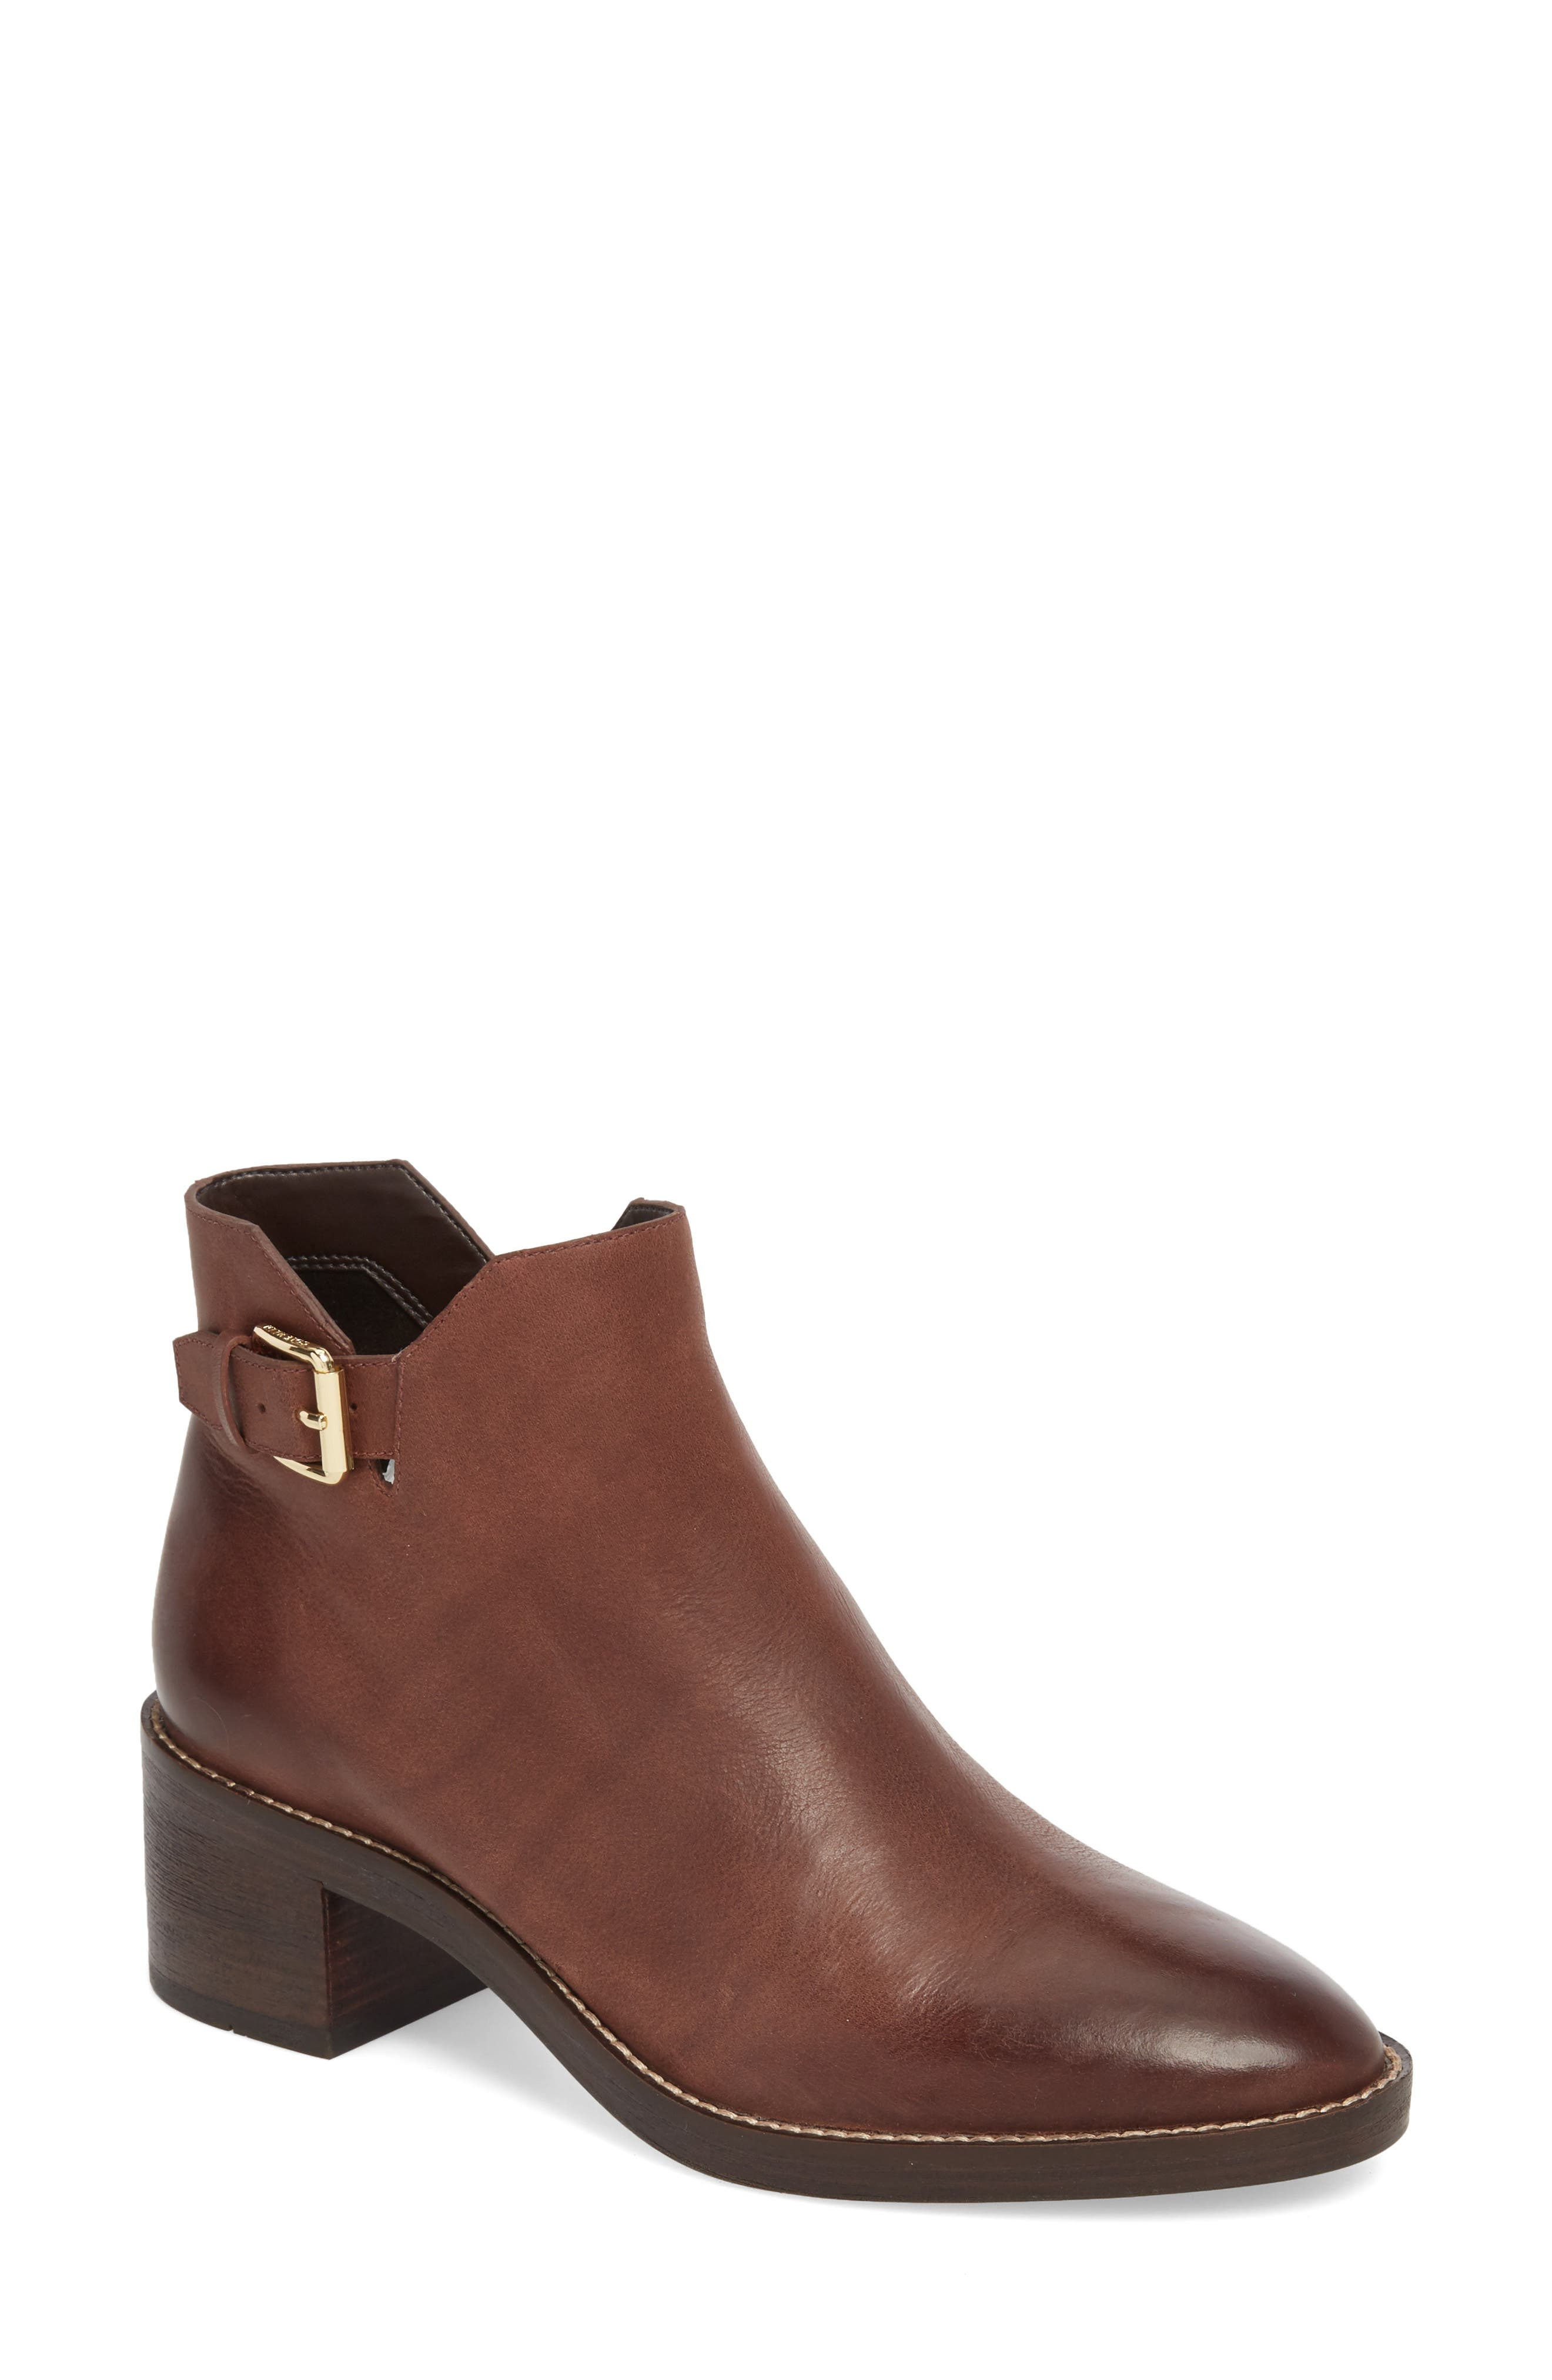 Harrington Grand Buckle Bootie,                             Main thumbnail 1, color,                             Chocolate Leather